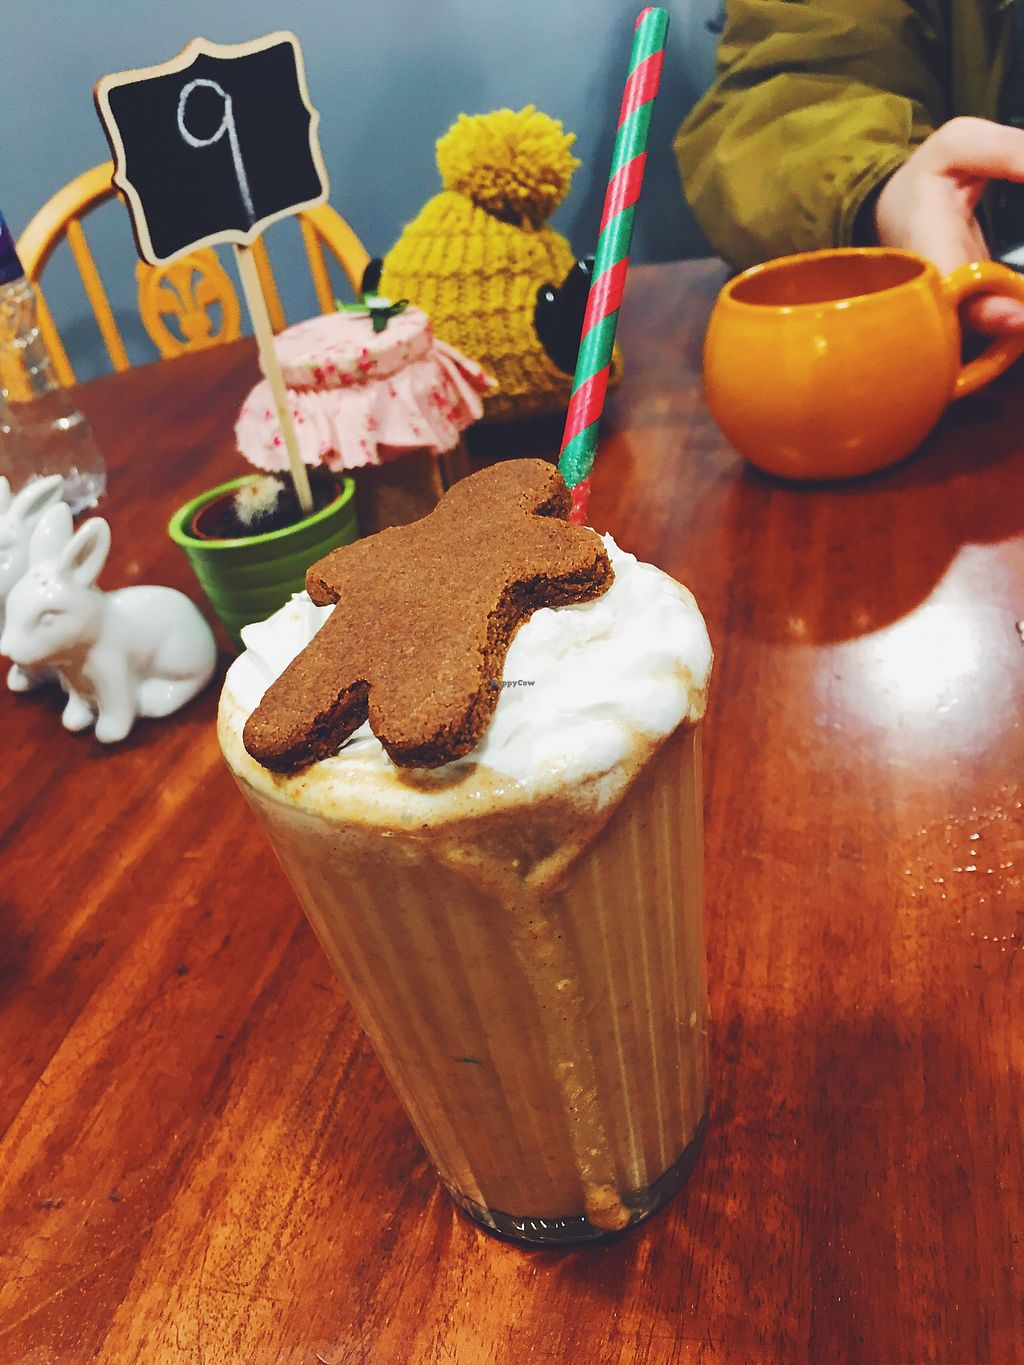 "Photo of The Herbivore Kitchen  by <a href=""/members/profile/malinfrisell"">malinfrisell</a> <br/>Gingerbread milkshake  <br/> November 19, 2017  - <a href='/contact/abuse/image/97309/327095'>Report</a>"